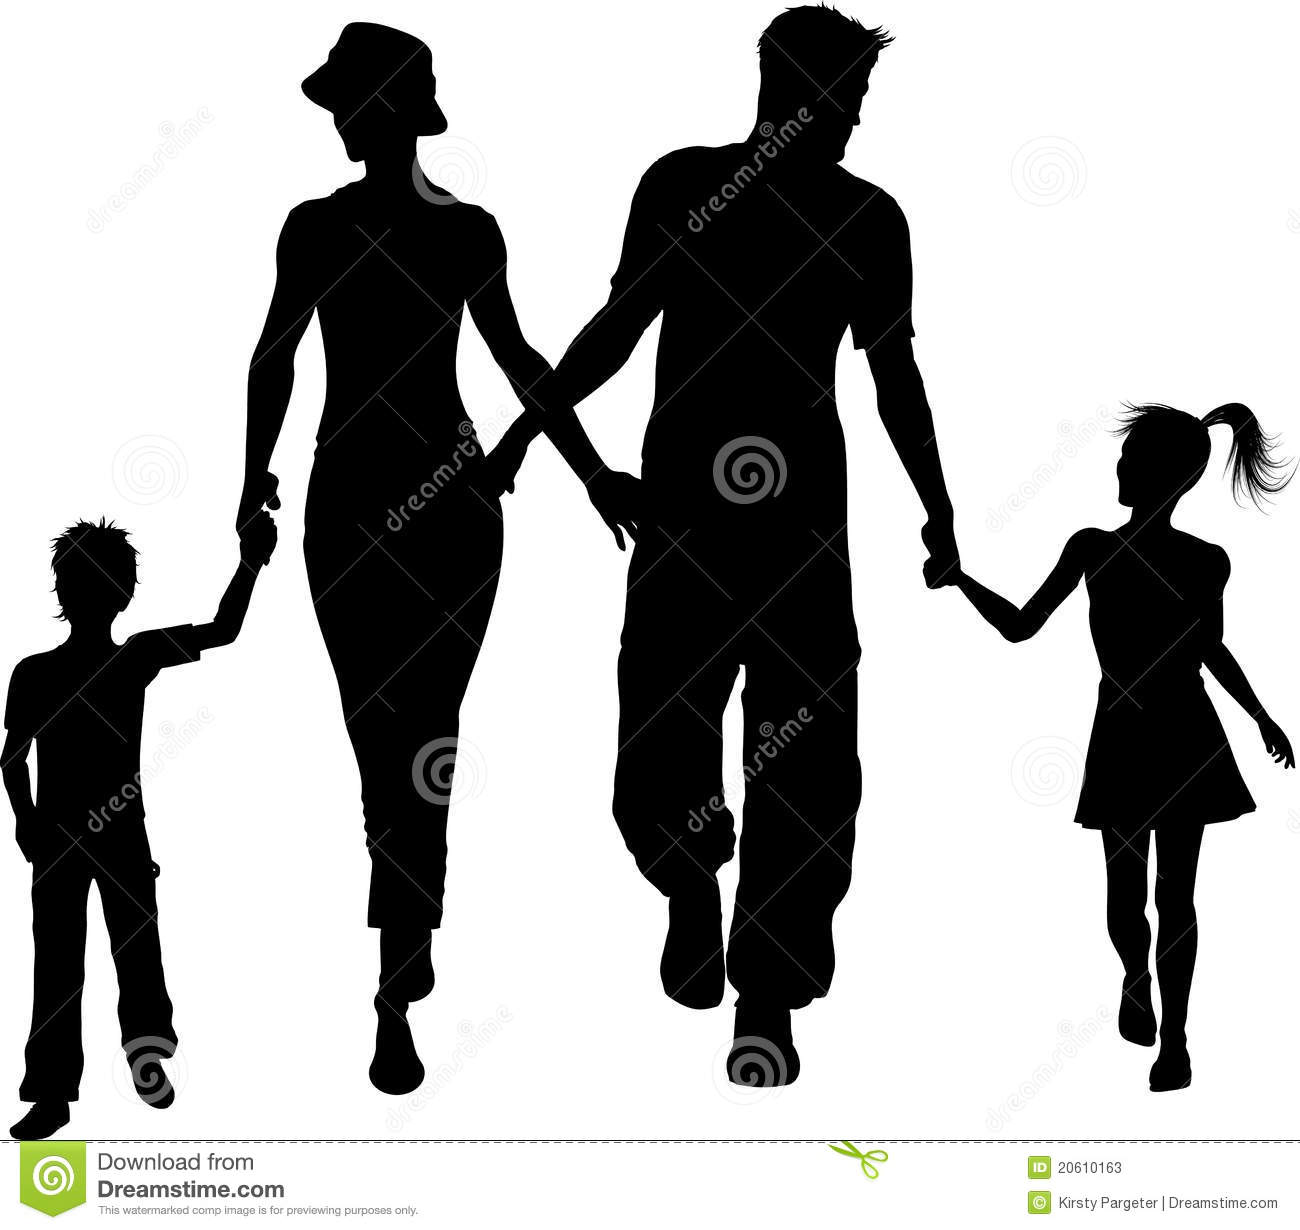 Silhouette of a family walking holding hands Family Walking Silhouette